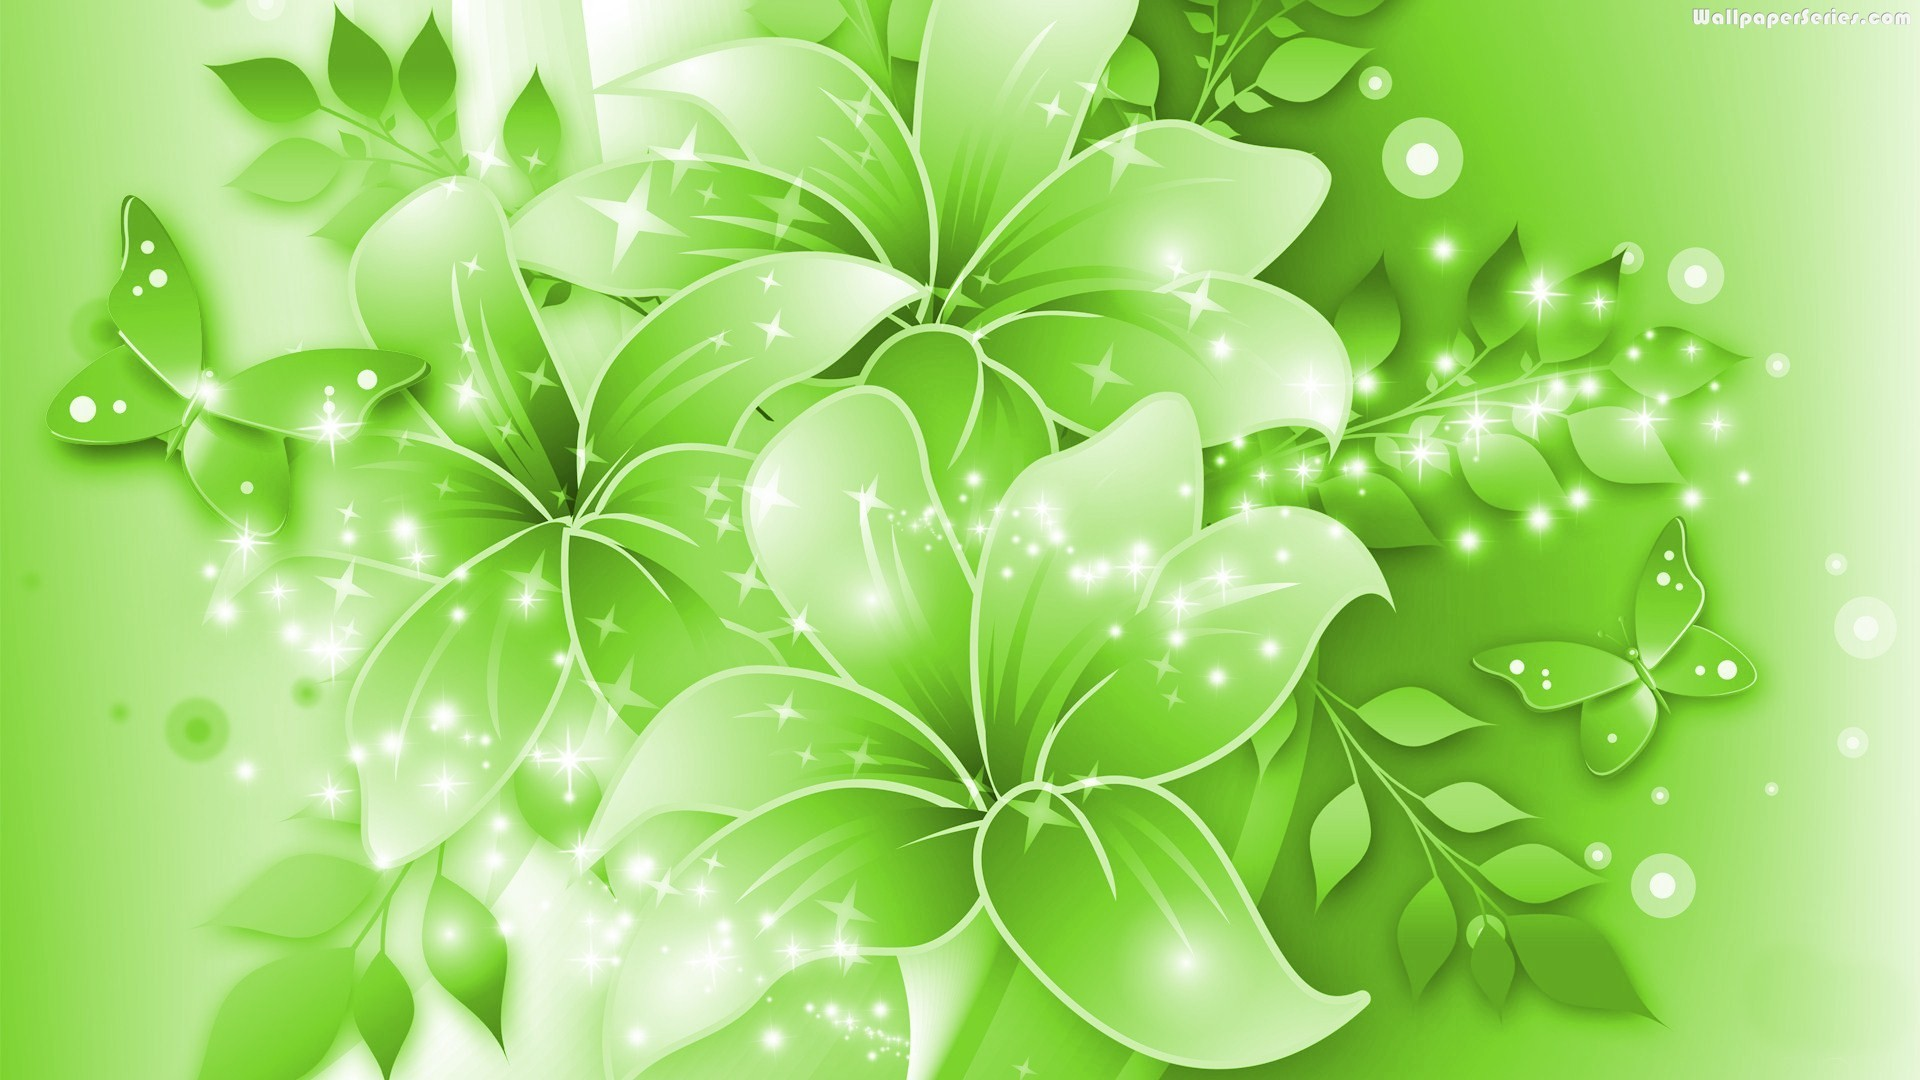 1920x1080 animated green flower image